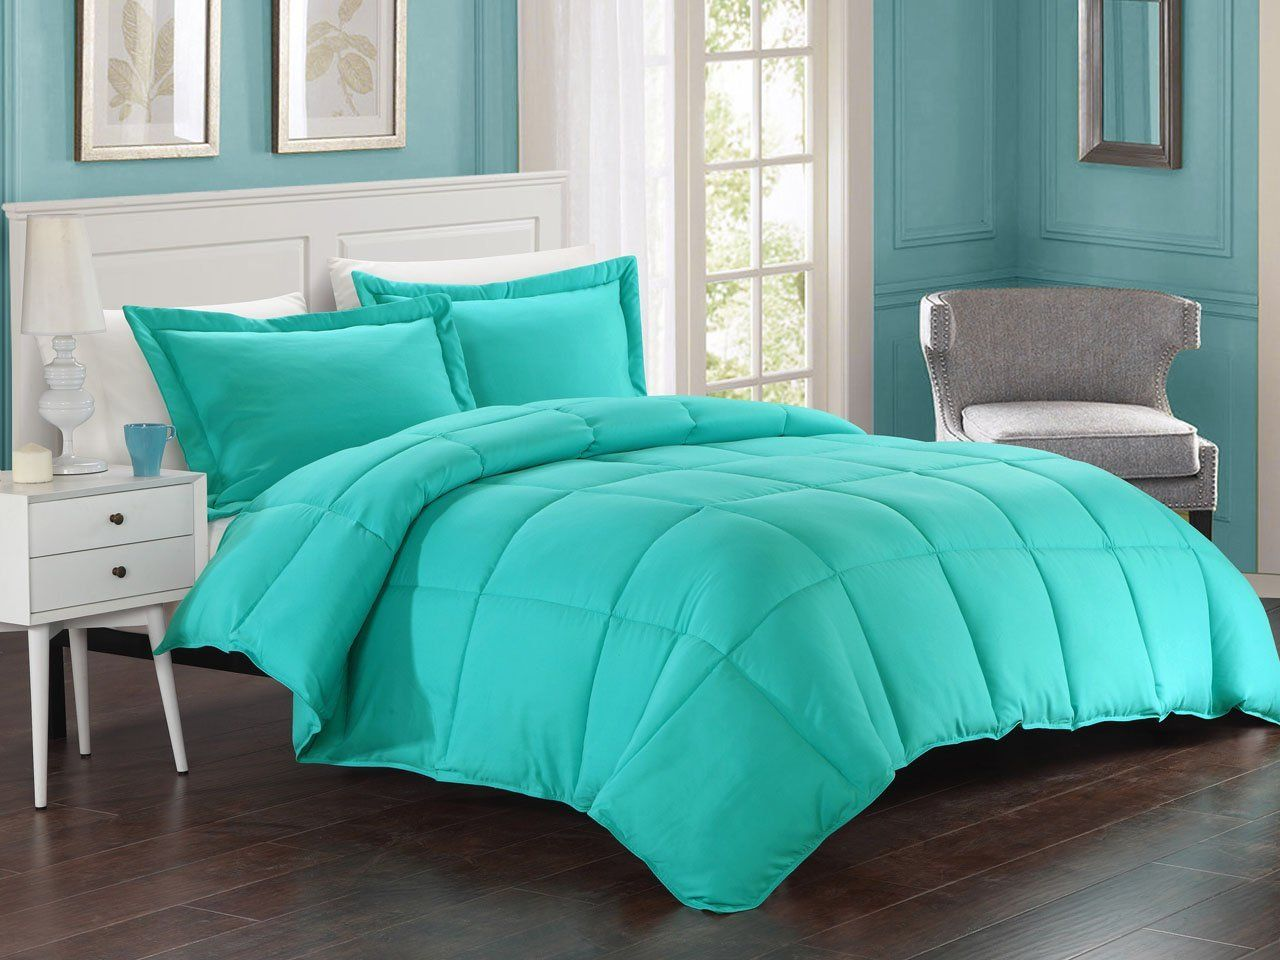 regarding sale purple comforter sets set bedding bed info cal view remodel on king california